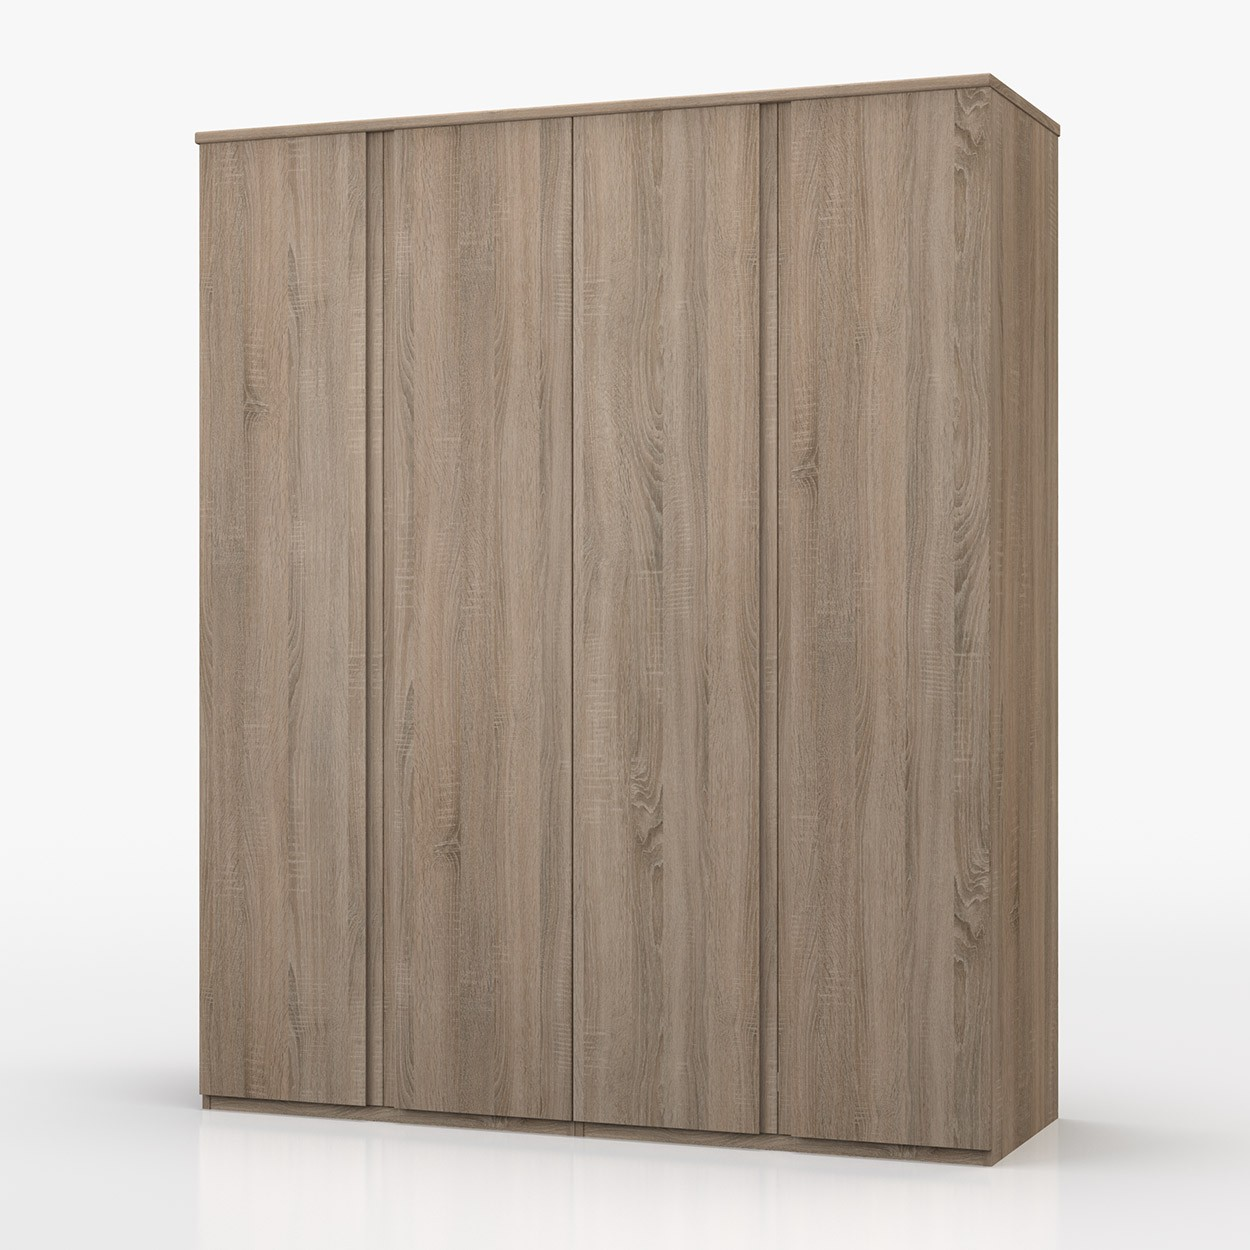 Avenue Truffle Oak 4 Door Wardrobe